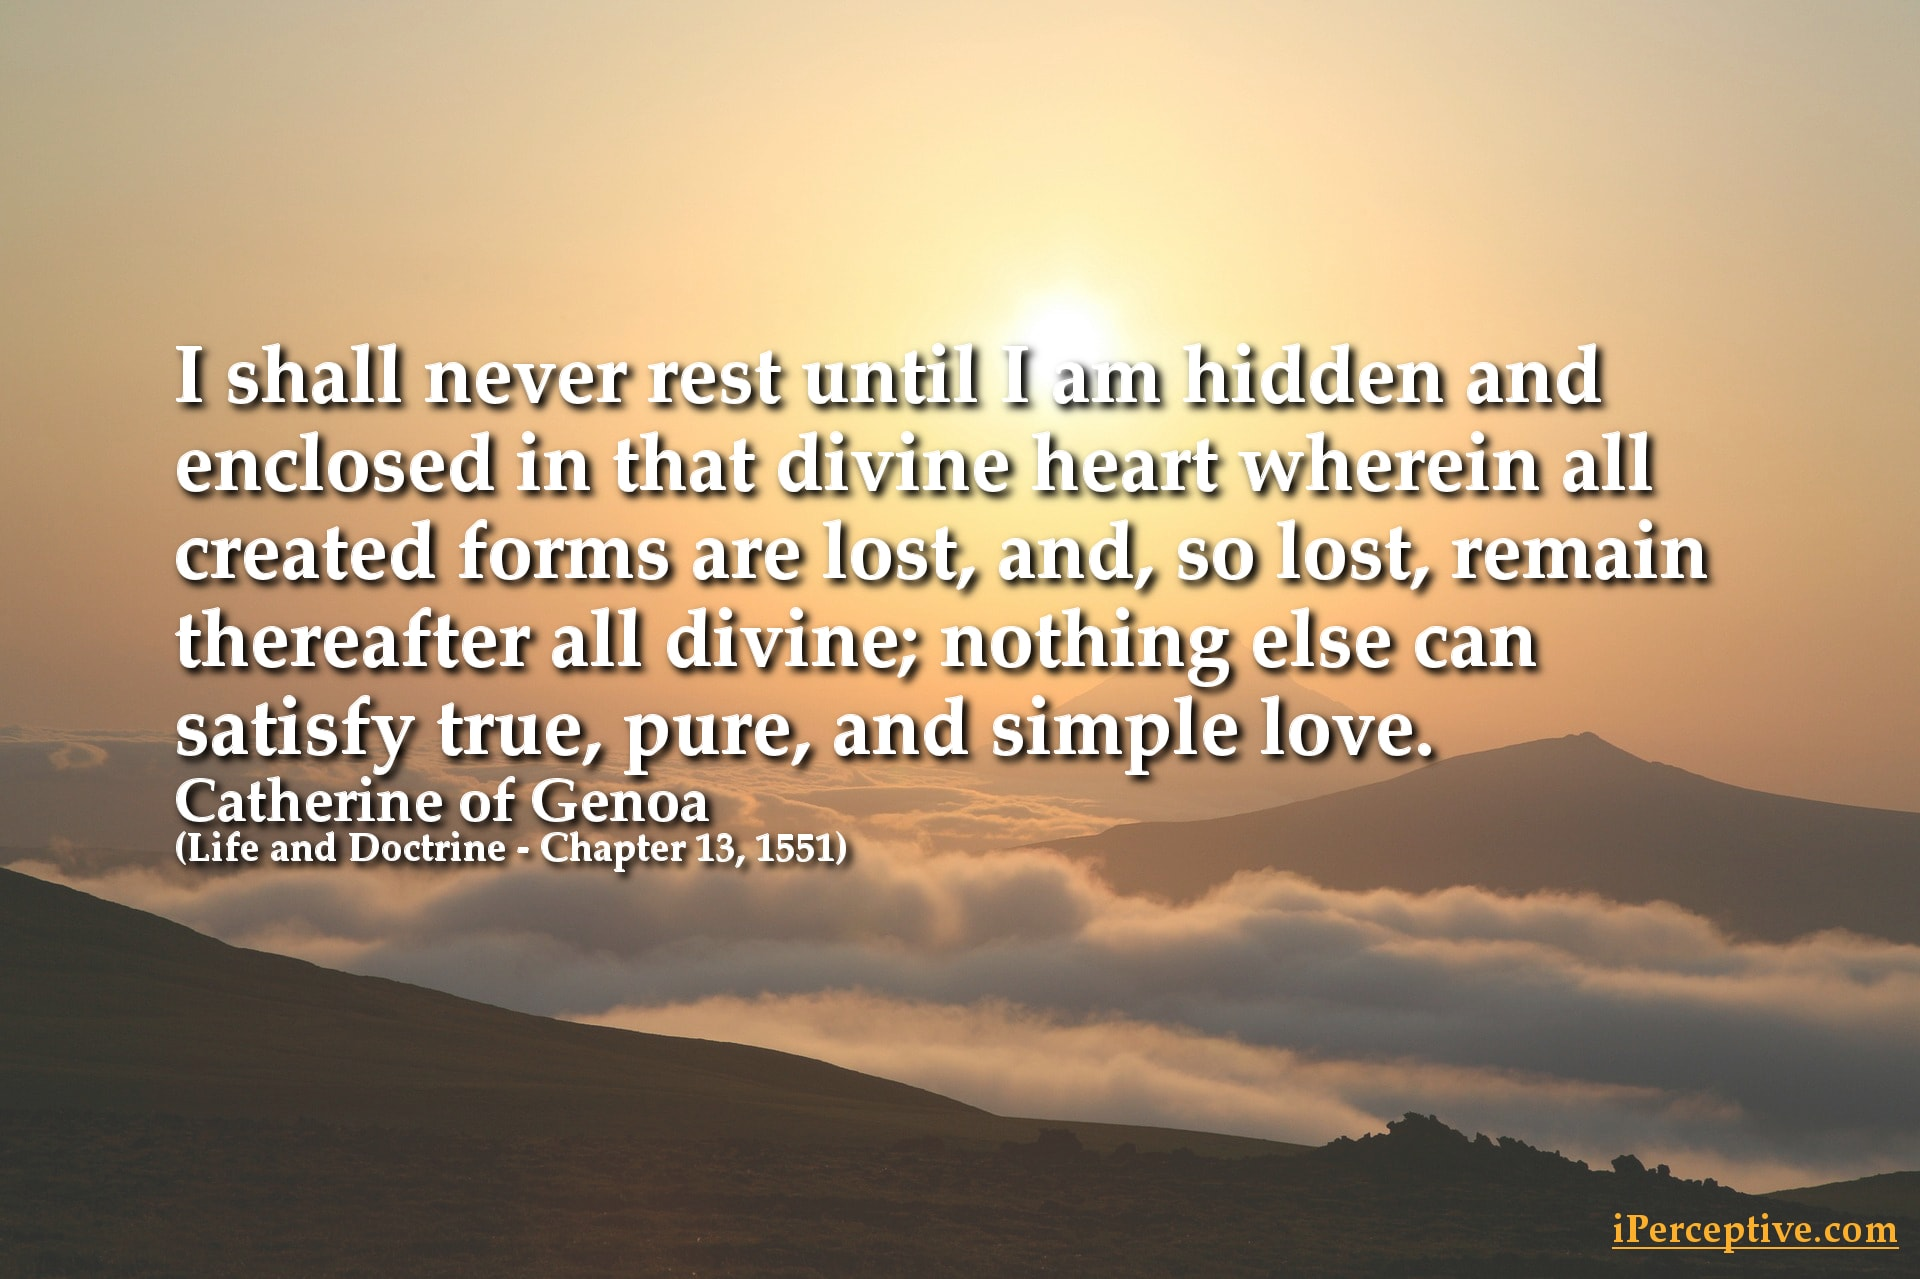 St. Catherine of Genoa Quote: I shall never rest until I am hidden and enclosed in that divine heart ...